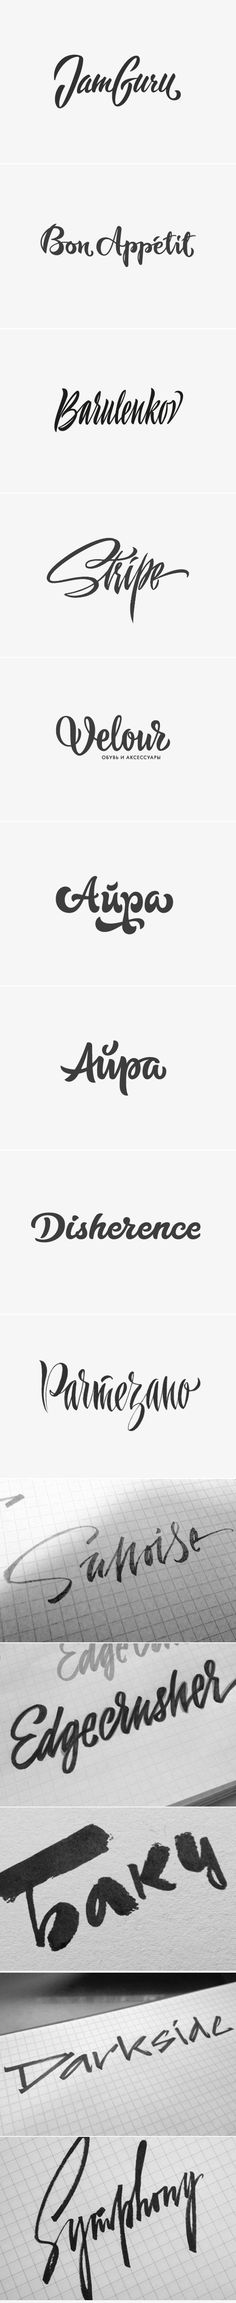 tattoo letters, lettering tattoos, font styles, tattoo fonts, typography tattoo, graphic design fonts, script fonts, tattoo typography, hand lettering